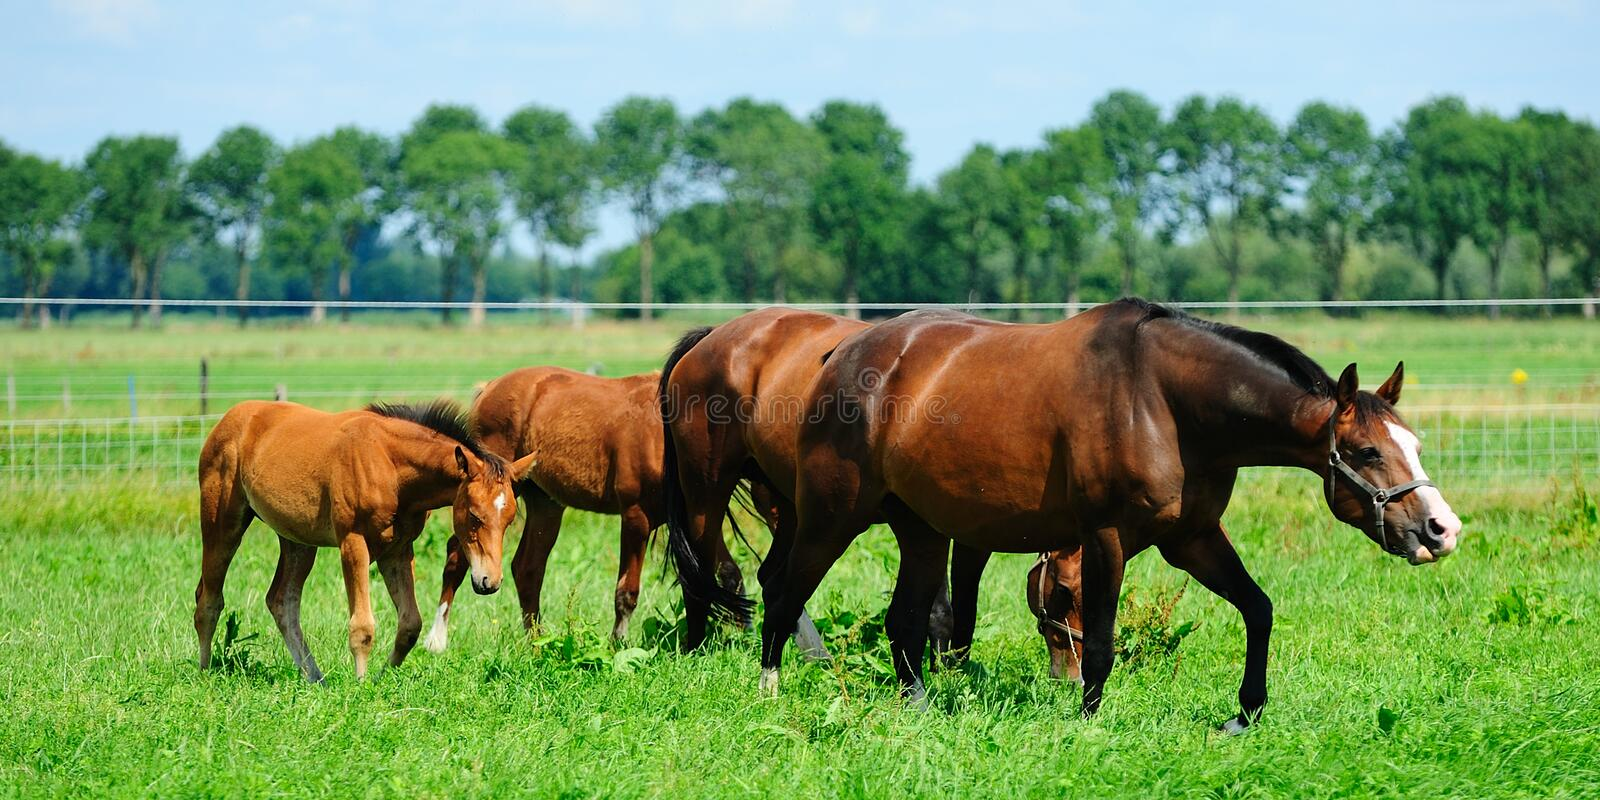 Horses on a field. Horses on a green field royalty free stock photography